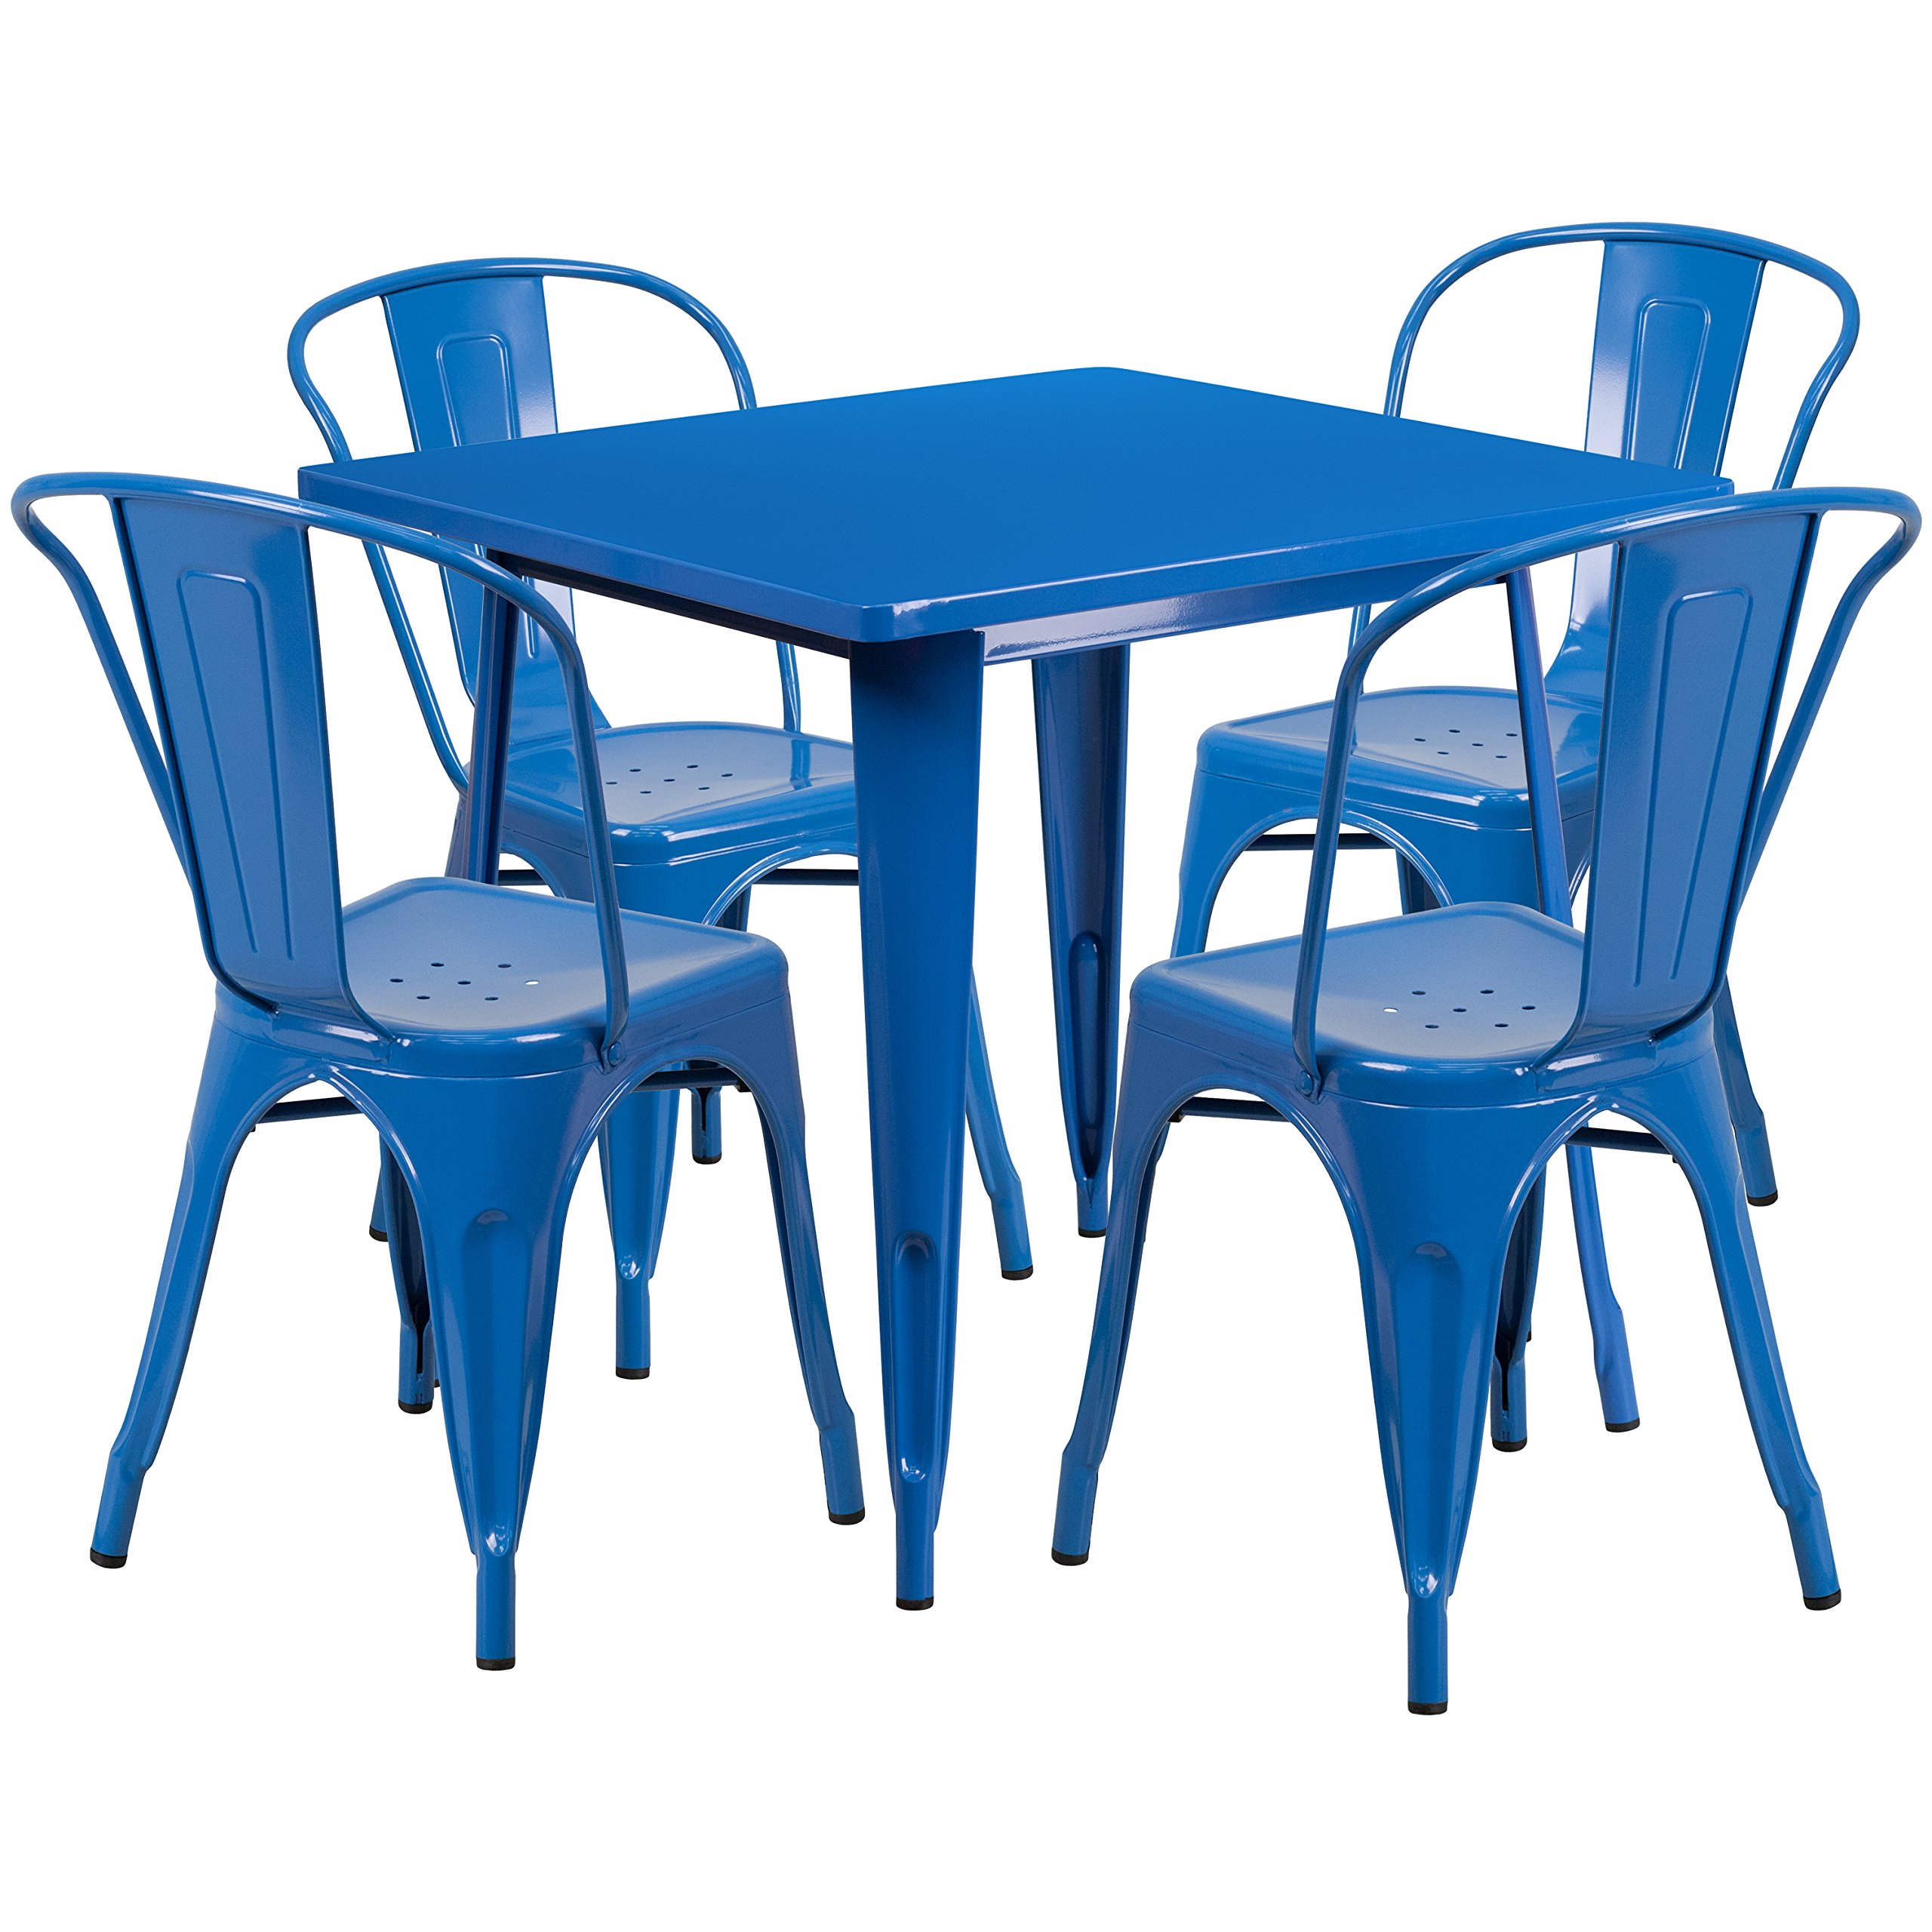 Flash Furniture 31.5'' Square Blue Metal Indoor-Outdoor Table Set with 4 Stack Chairs by Flash Furniture (Image #1)